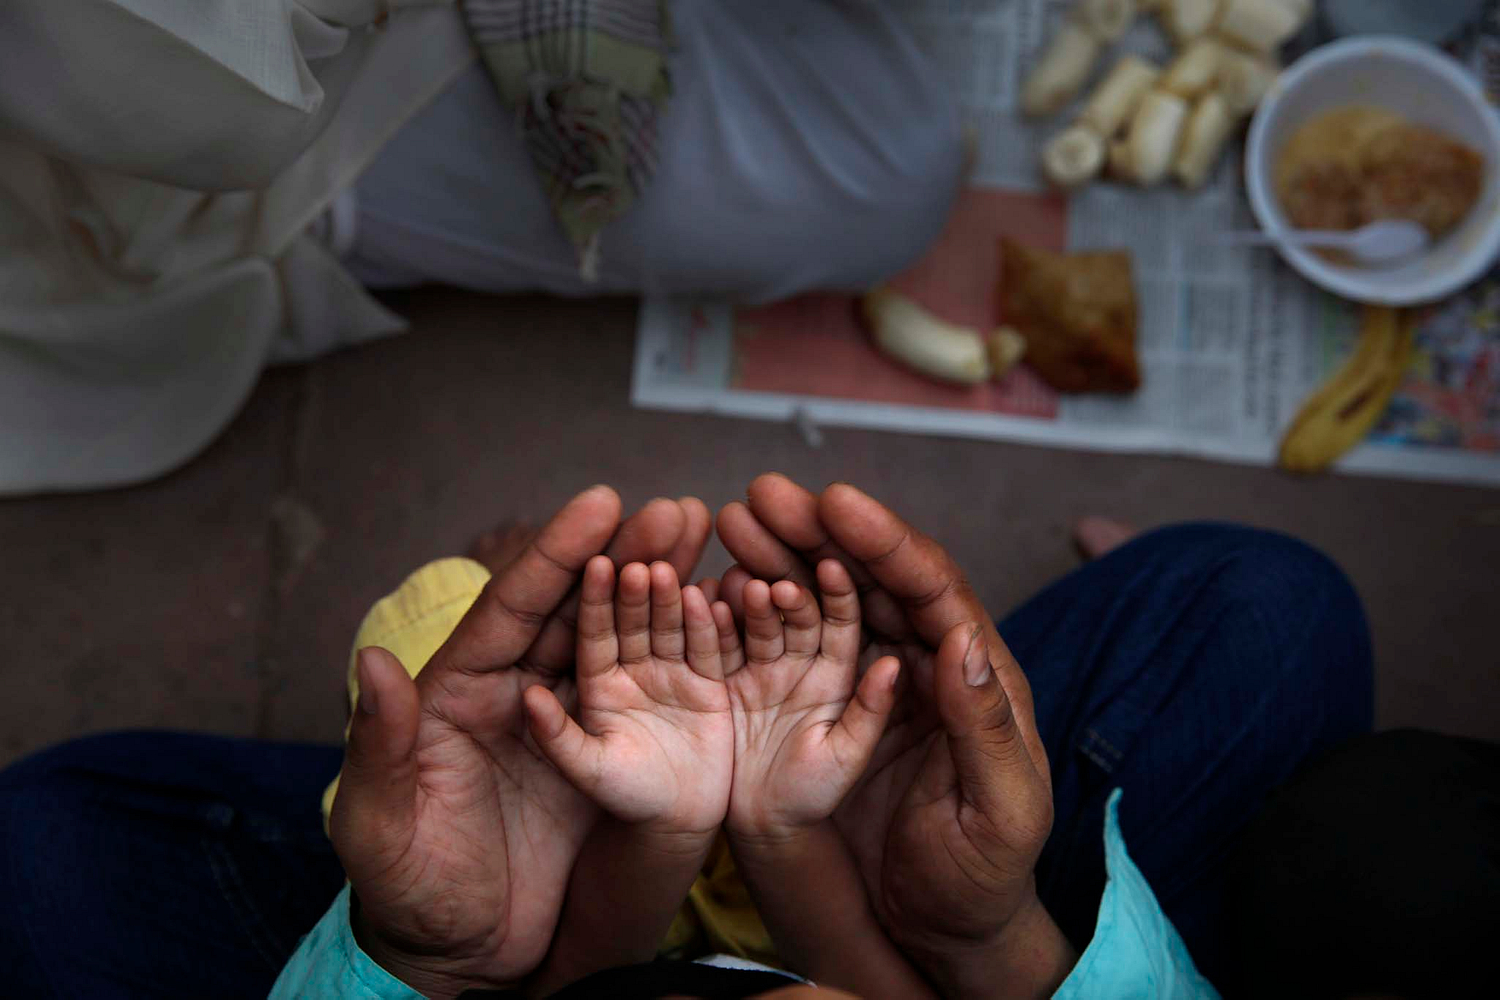 An Indian Muslim father holds the hands of her daughter in his palms and prays before opening the fast in the evening on the first day of the Ramadan at the Jama Maszid or Mosque, in  New Delhi, India ,Monday, June 30, 2014. (AP Photo /Manish Swarup)